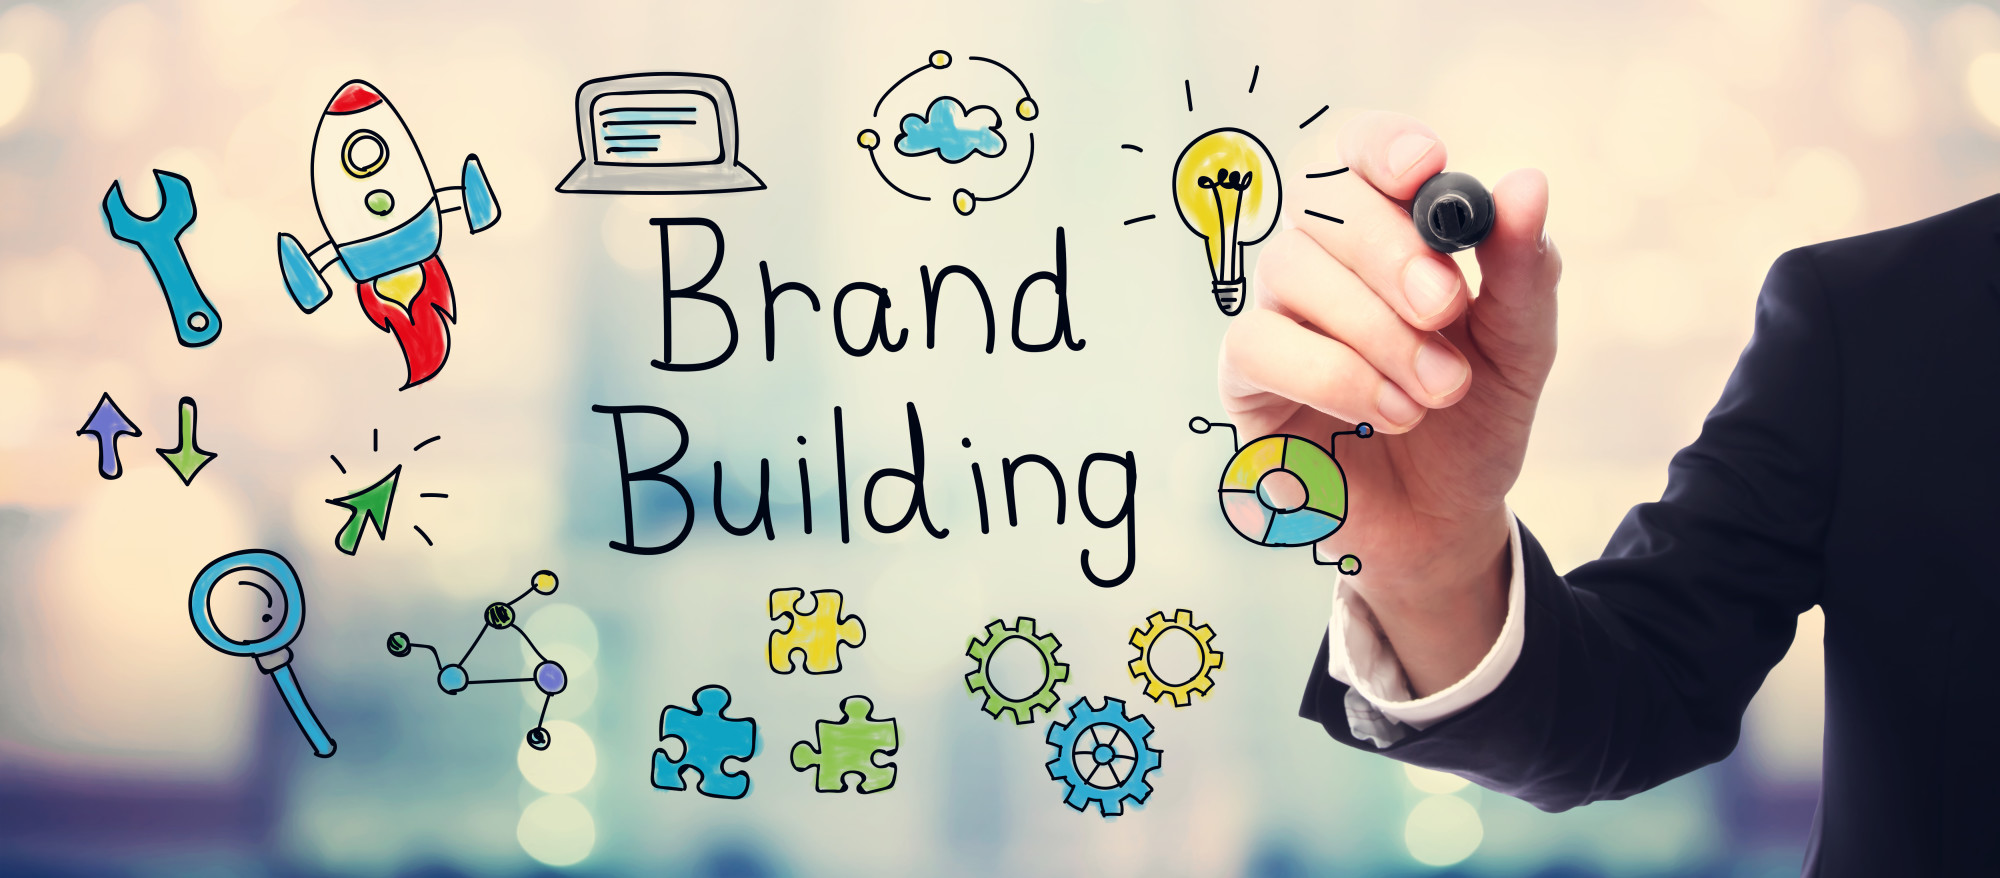 brand building text and icons